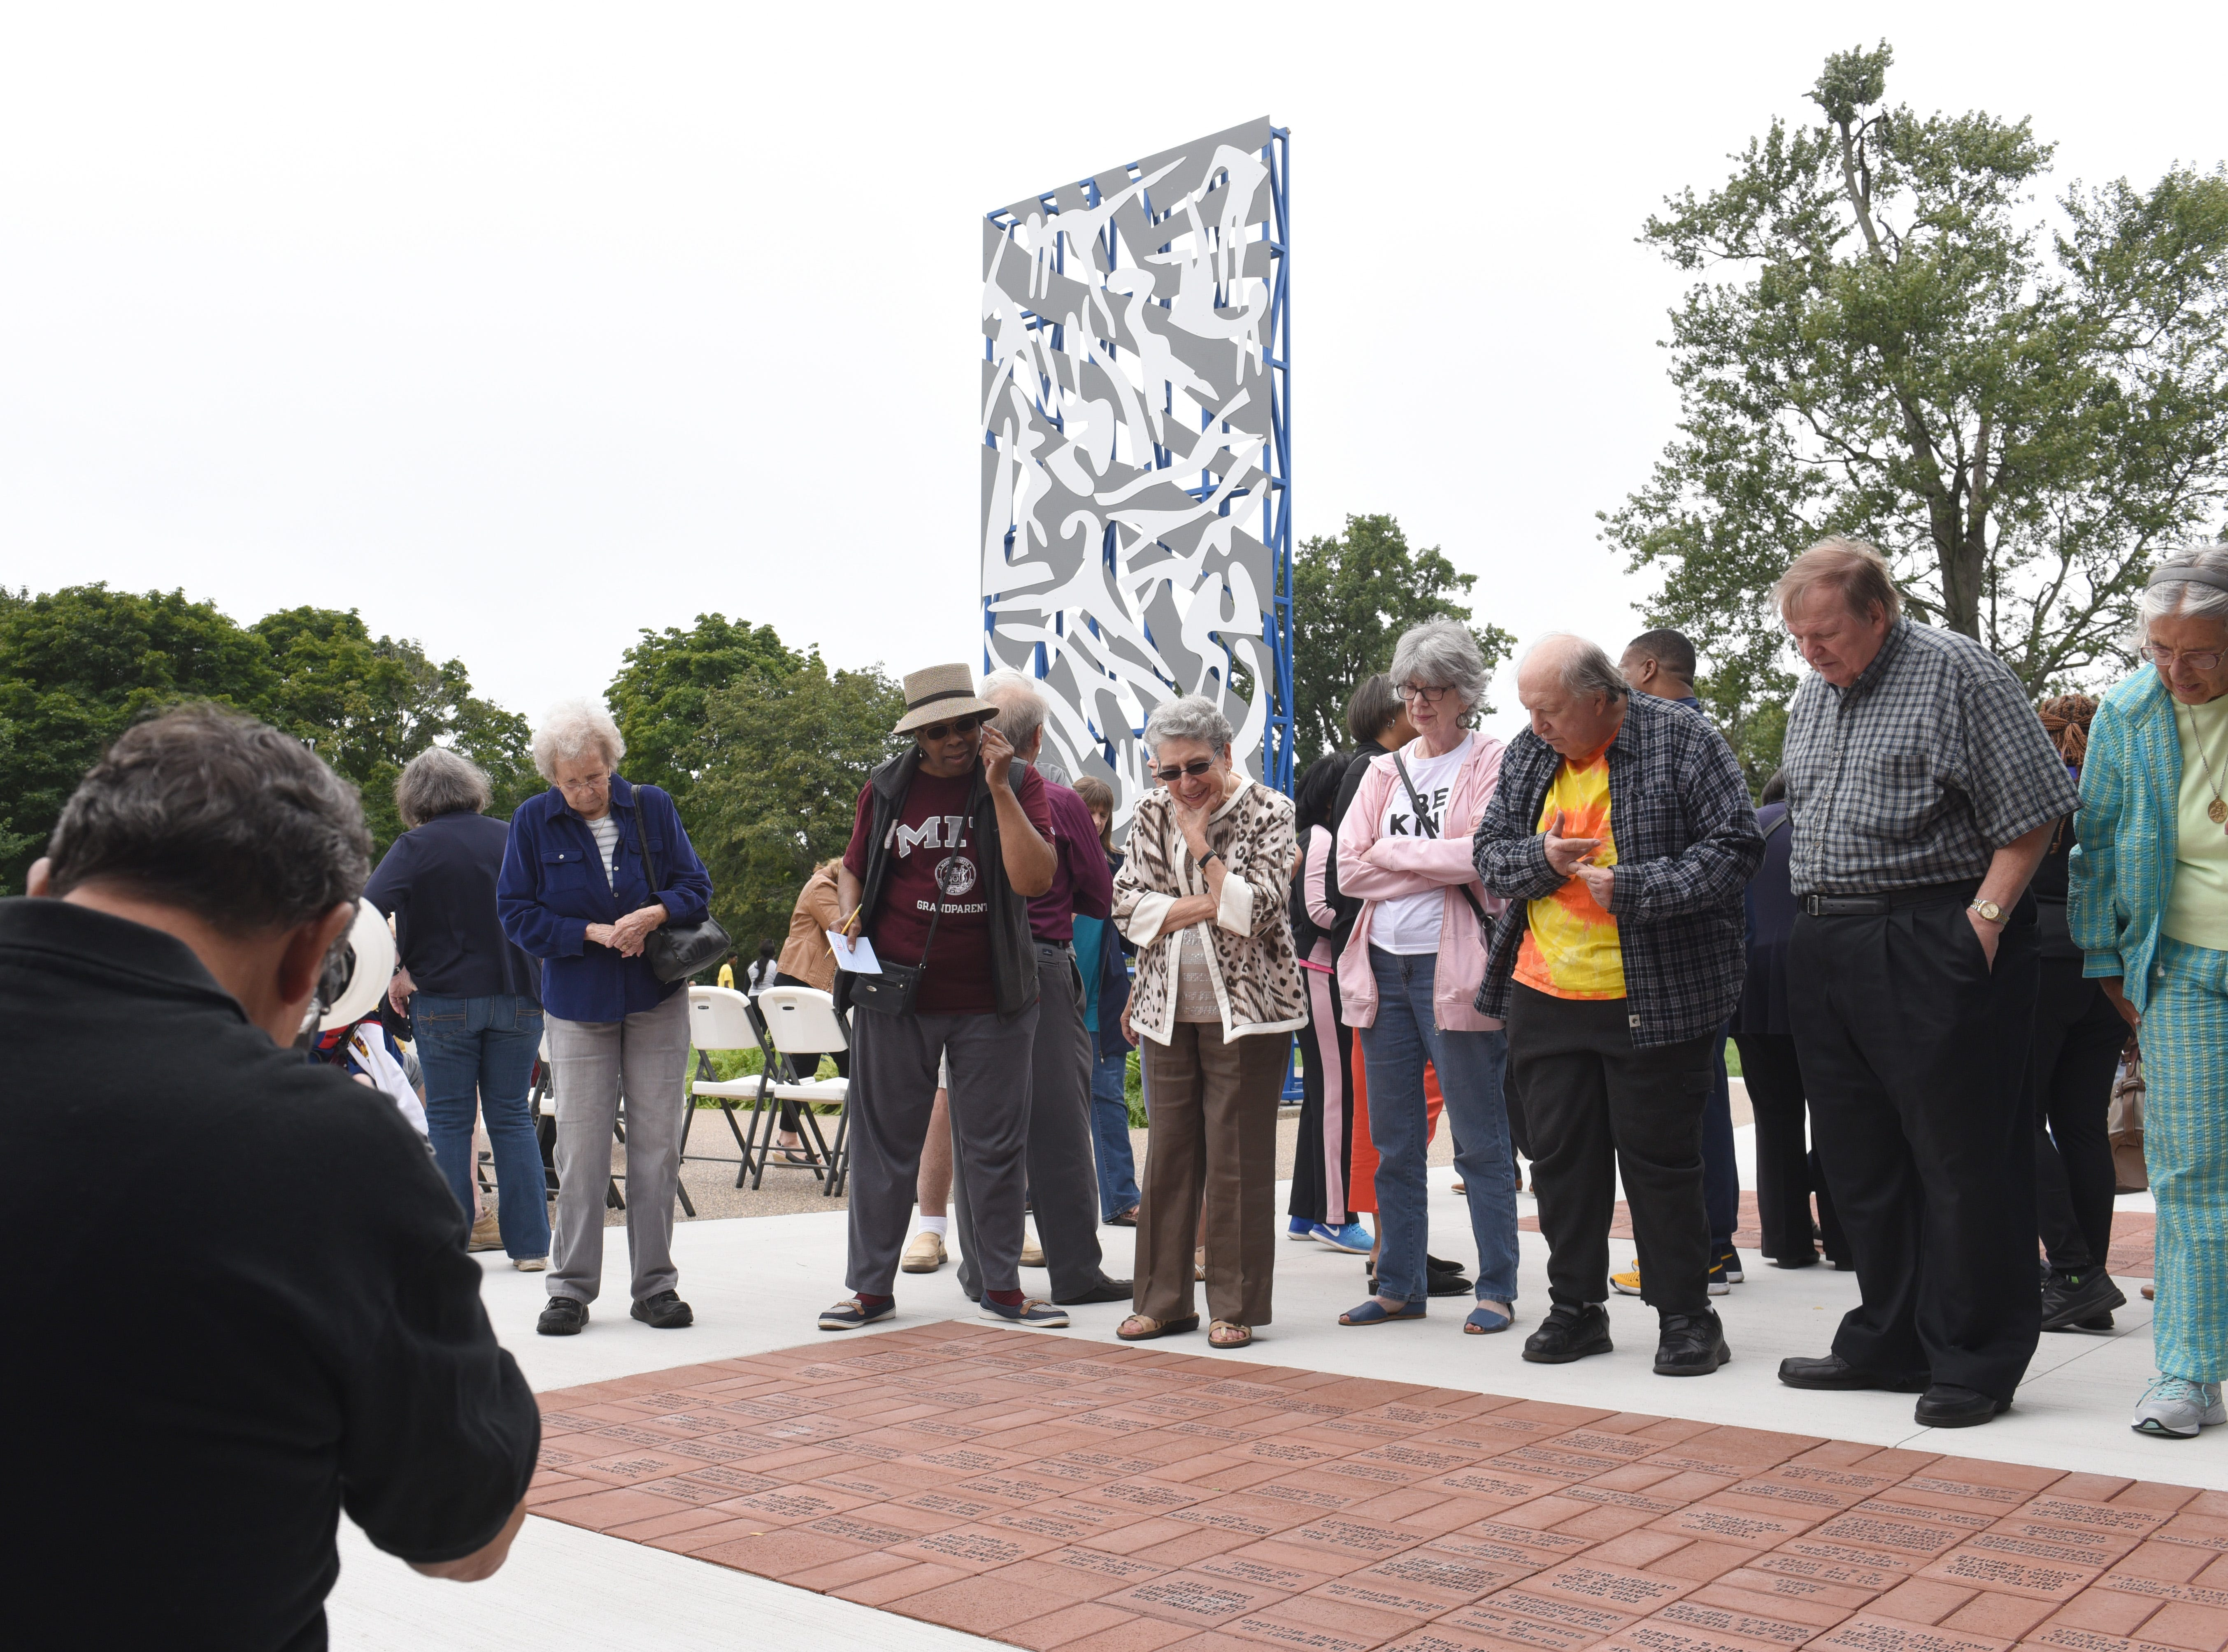 People gather outside the Community House during a dedication ceremony of a sculpture by artist Charles McGee at  North Rosedale Park.